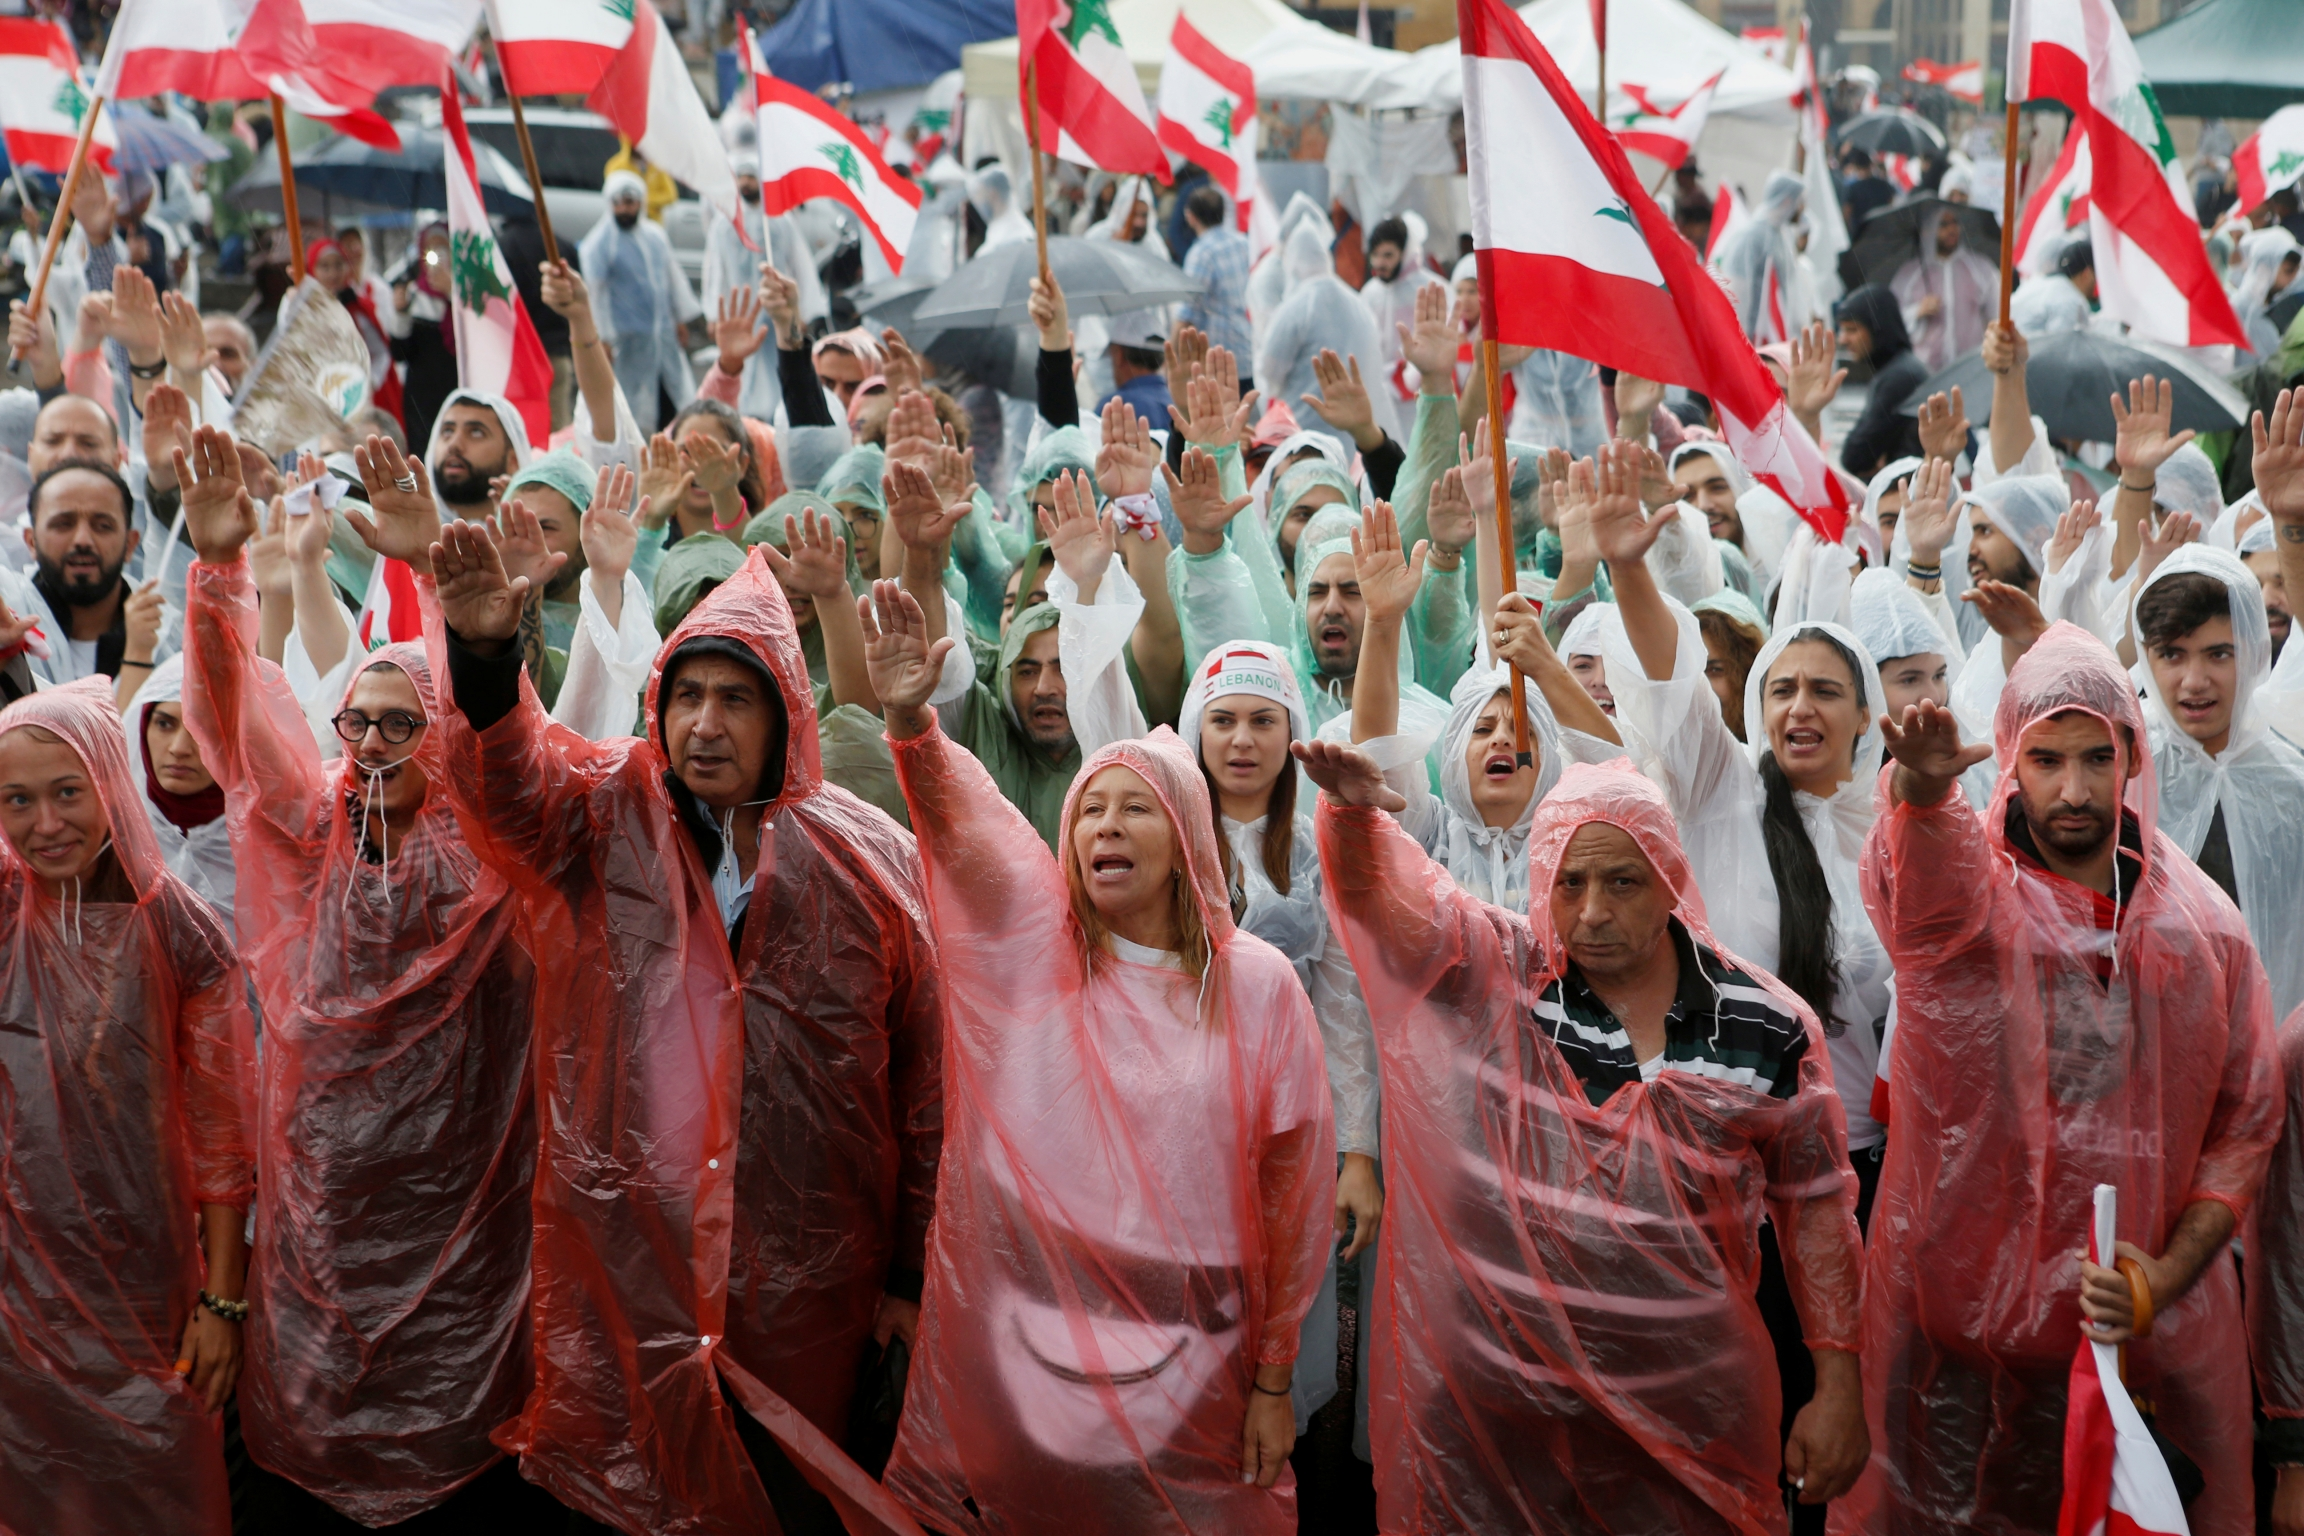 Demonstrators, covered in rain coats, gesture and carry flags during ongoing anti-government protests in downtown Beirut, Lebanon, Oct. 24, 2019.